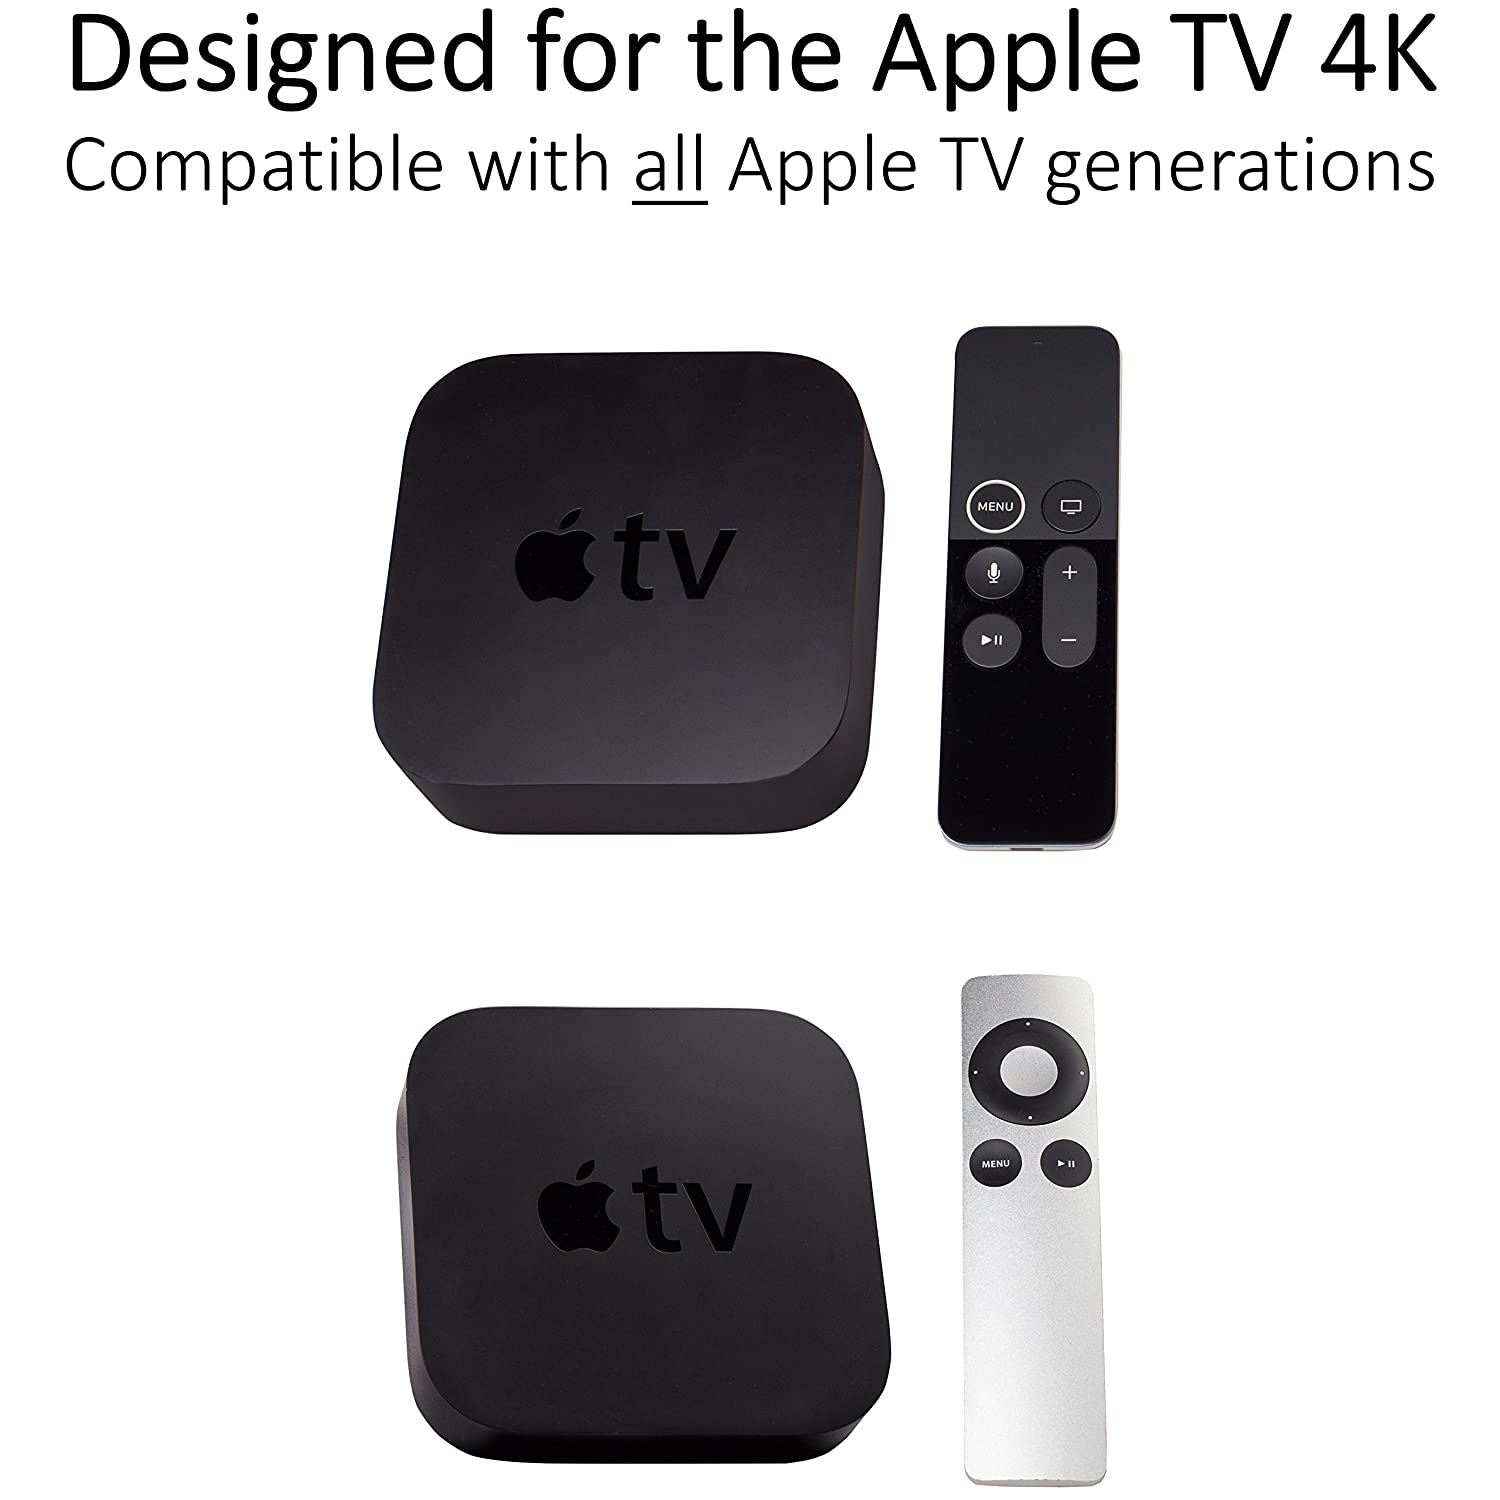 amazoncom reliamount apple tv mount compatible with apple tv 4k 817zllghwbl b017s25fma motorcycle mechanic job description apple